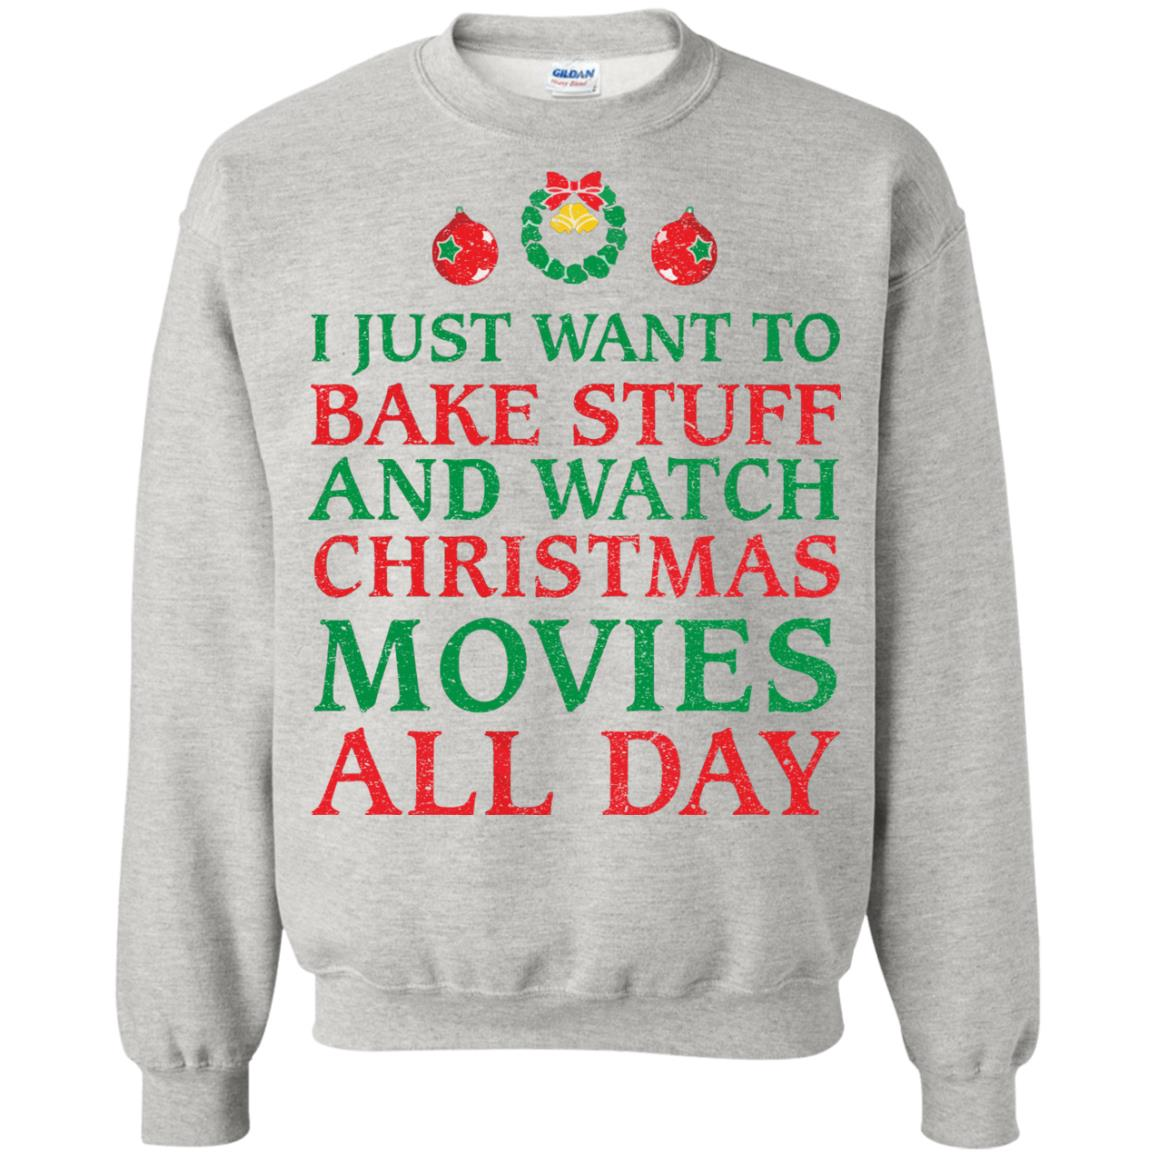 image 2700 - I Just Want to Bake Stuff and Watch Christmas Movie All Day Sweater, Ugly Sweatshirts